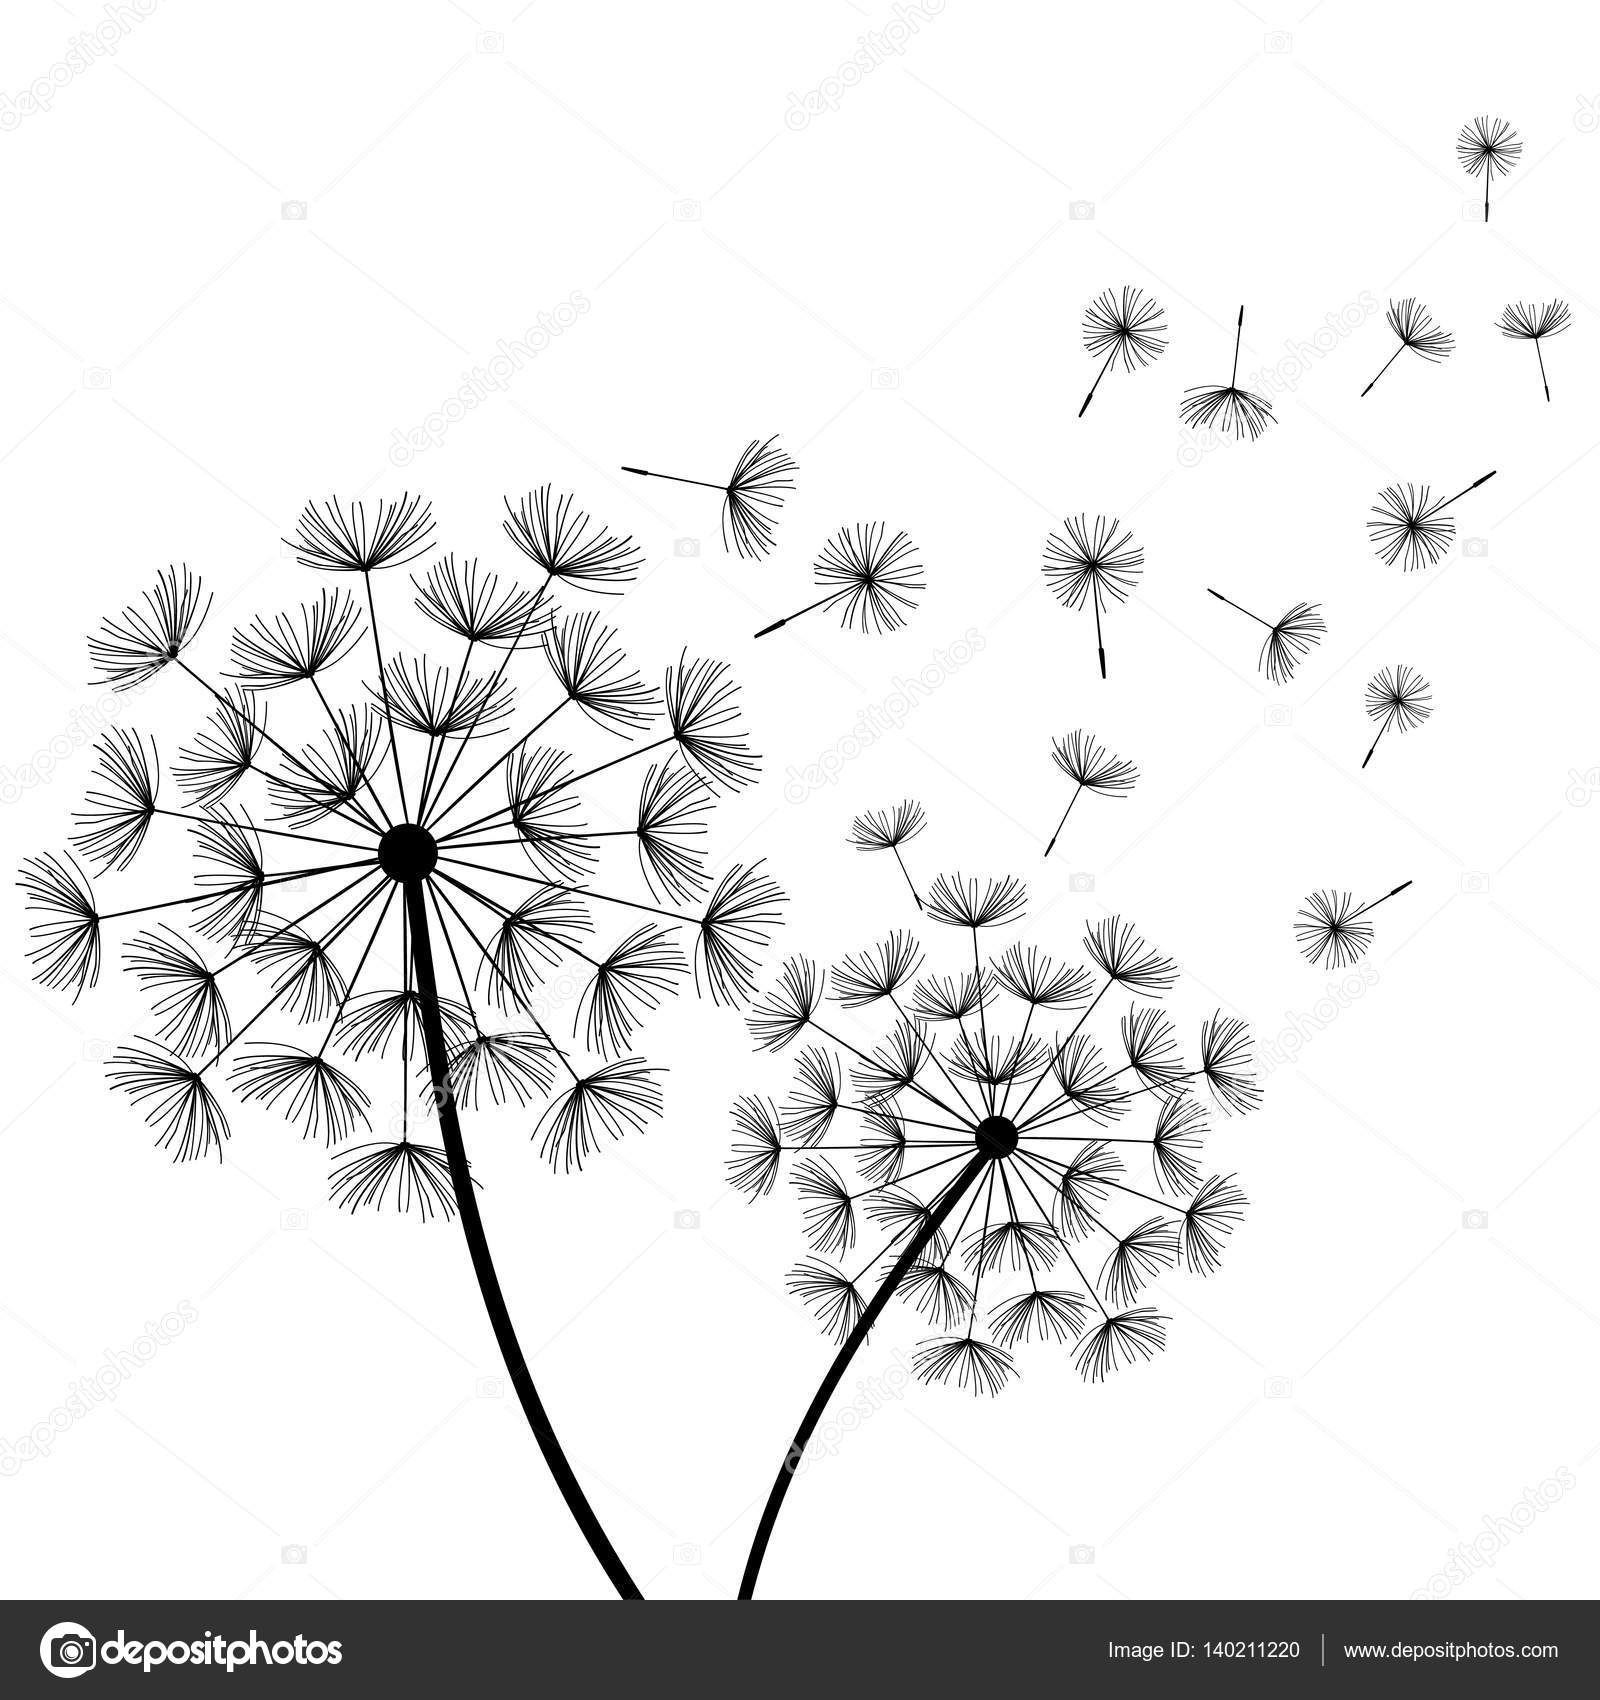 Black And White Dot Wallpaper White Background With Stylized Black Dandelions Stock